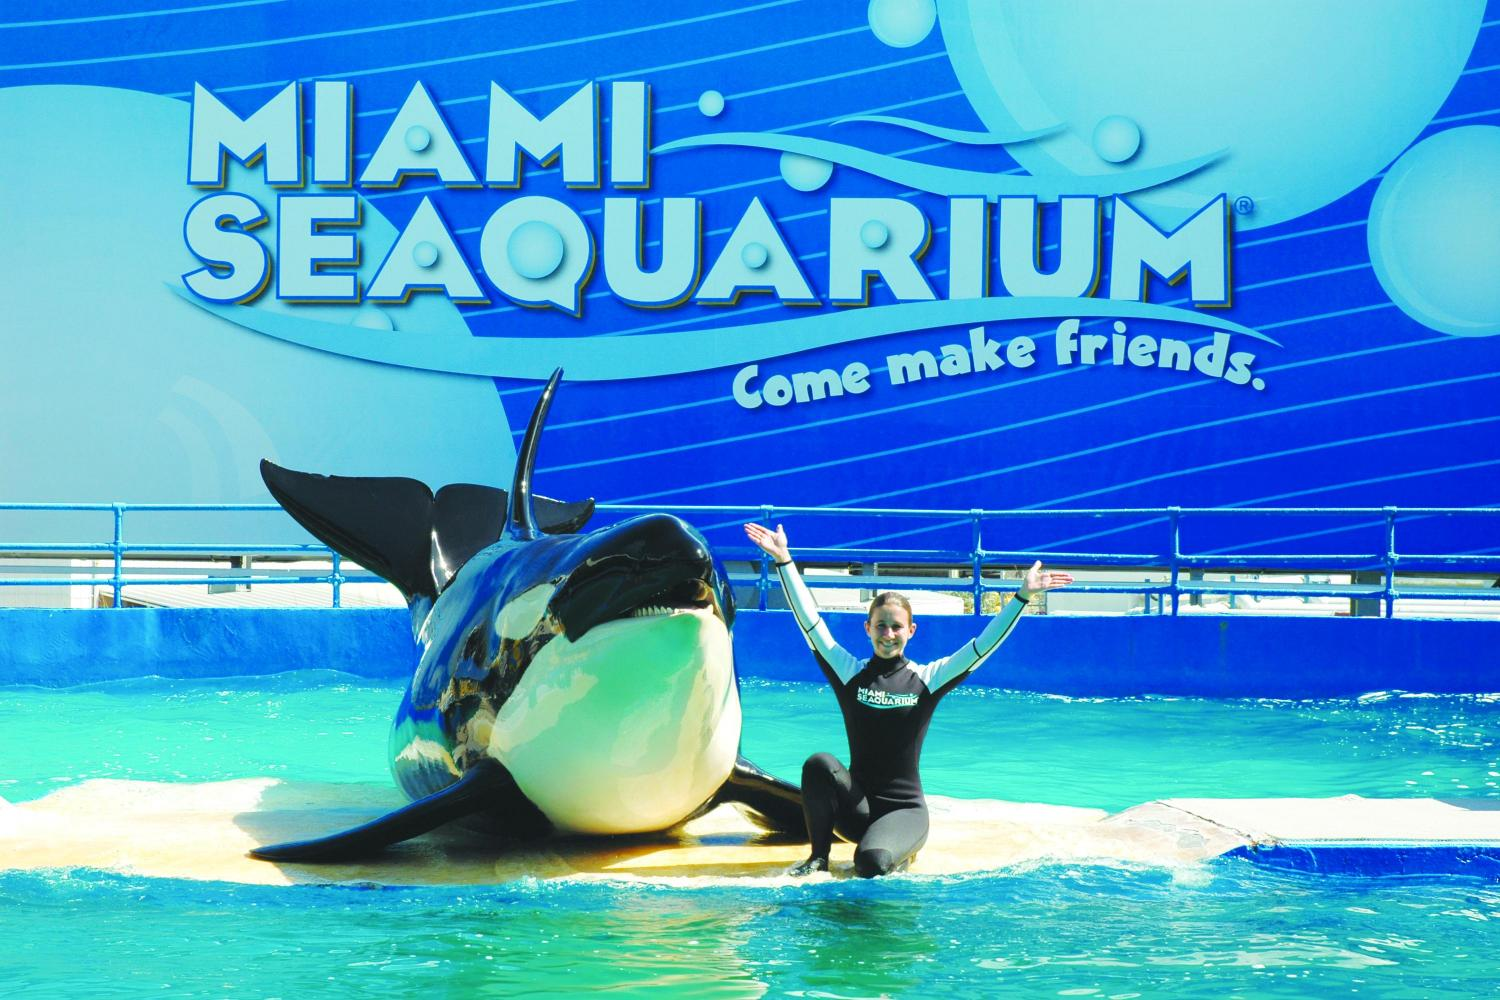 miami-sea-aquarium.jpg